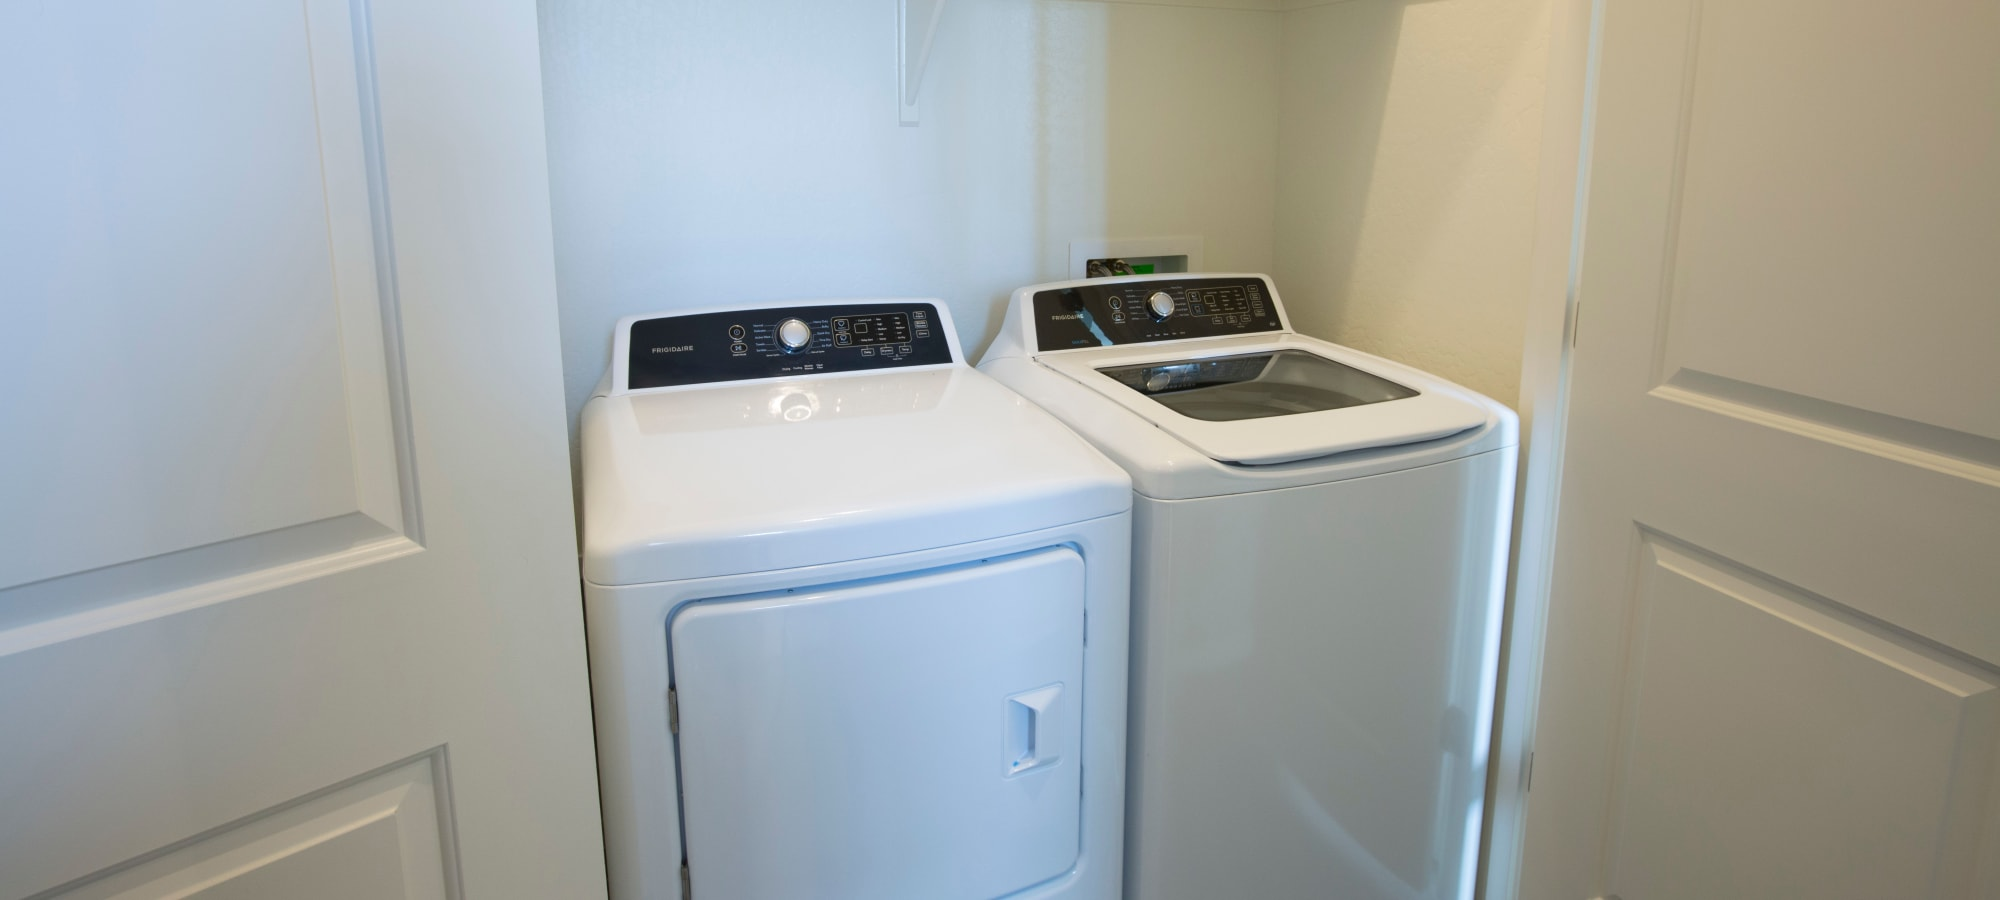 In-unit washer and dryer in a model home at Christopher Todd Communities At Estrella Commons in Goodyear, Arizona